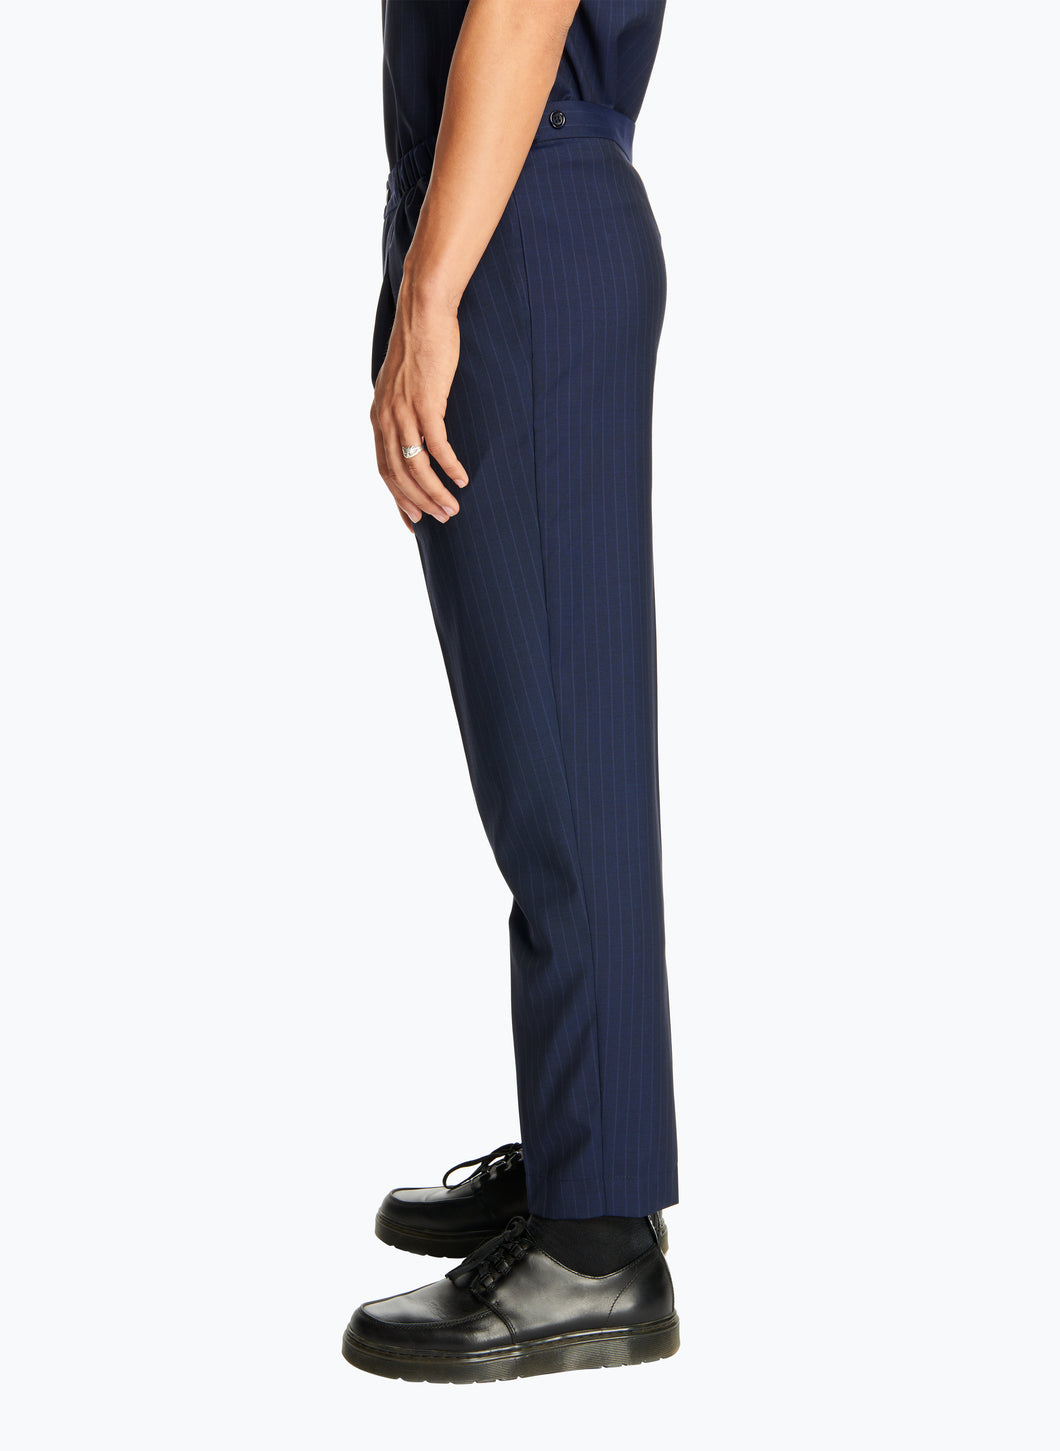 Pleated Pants with Elastic Sides in Navy Blue Striped Cool Wool